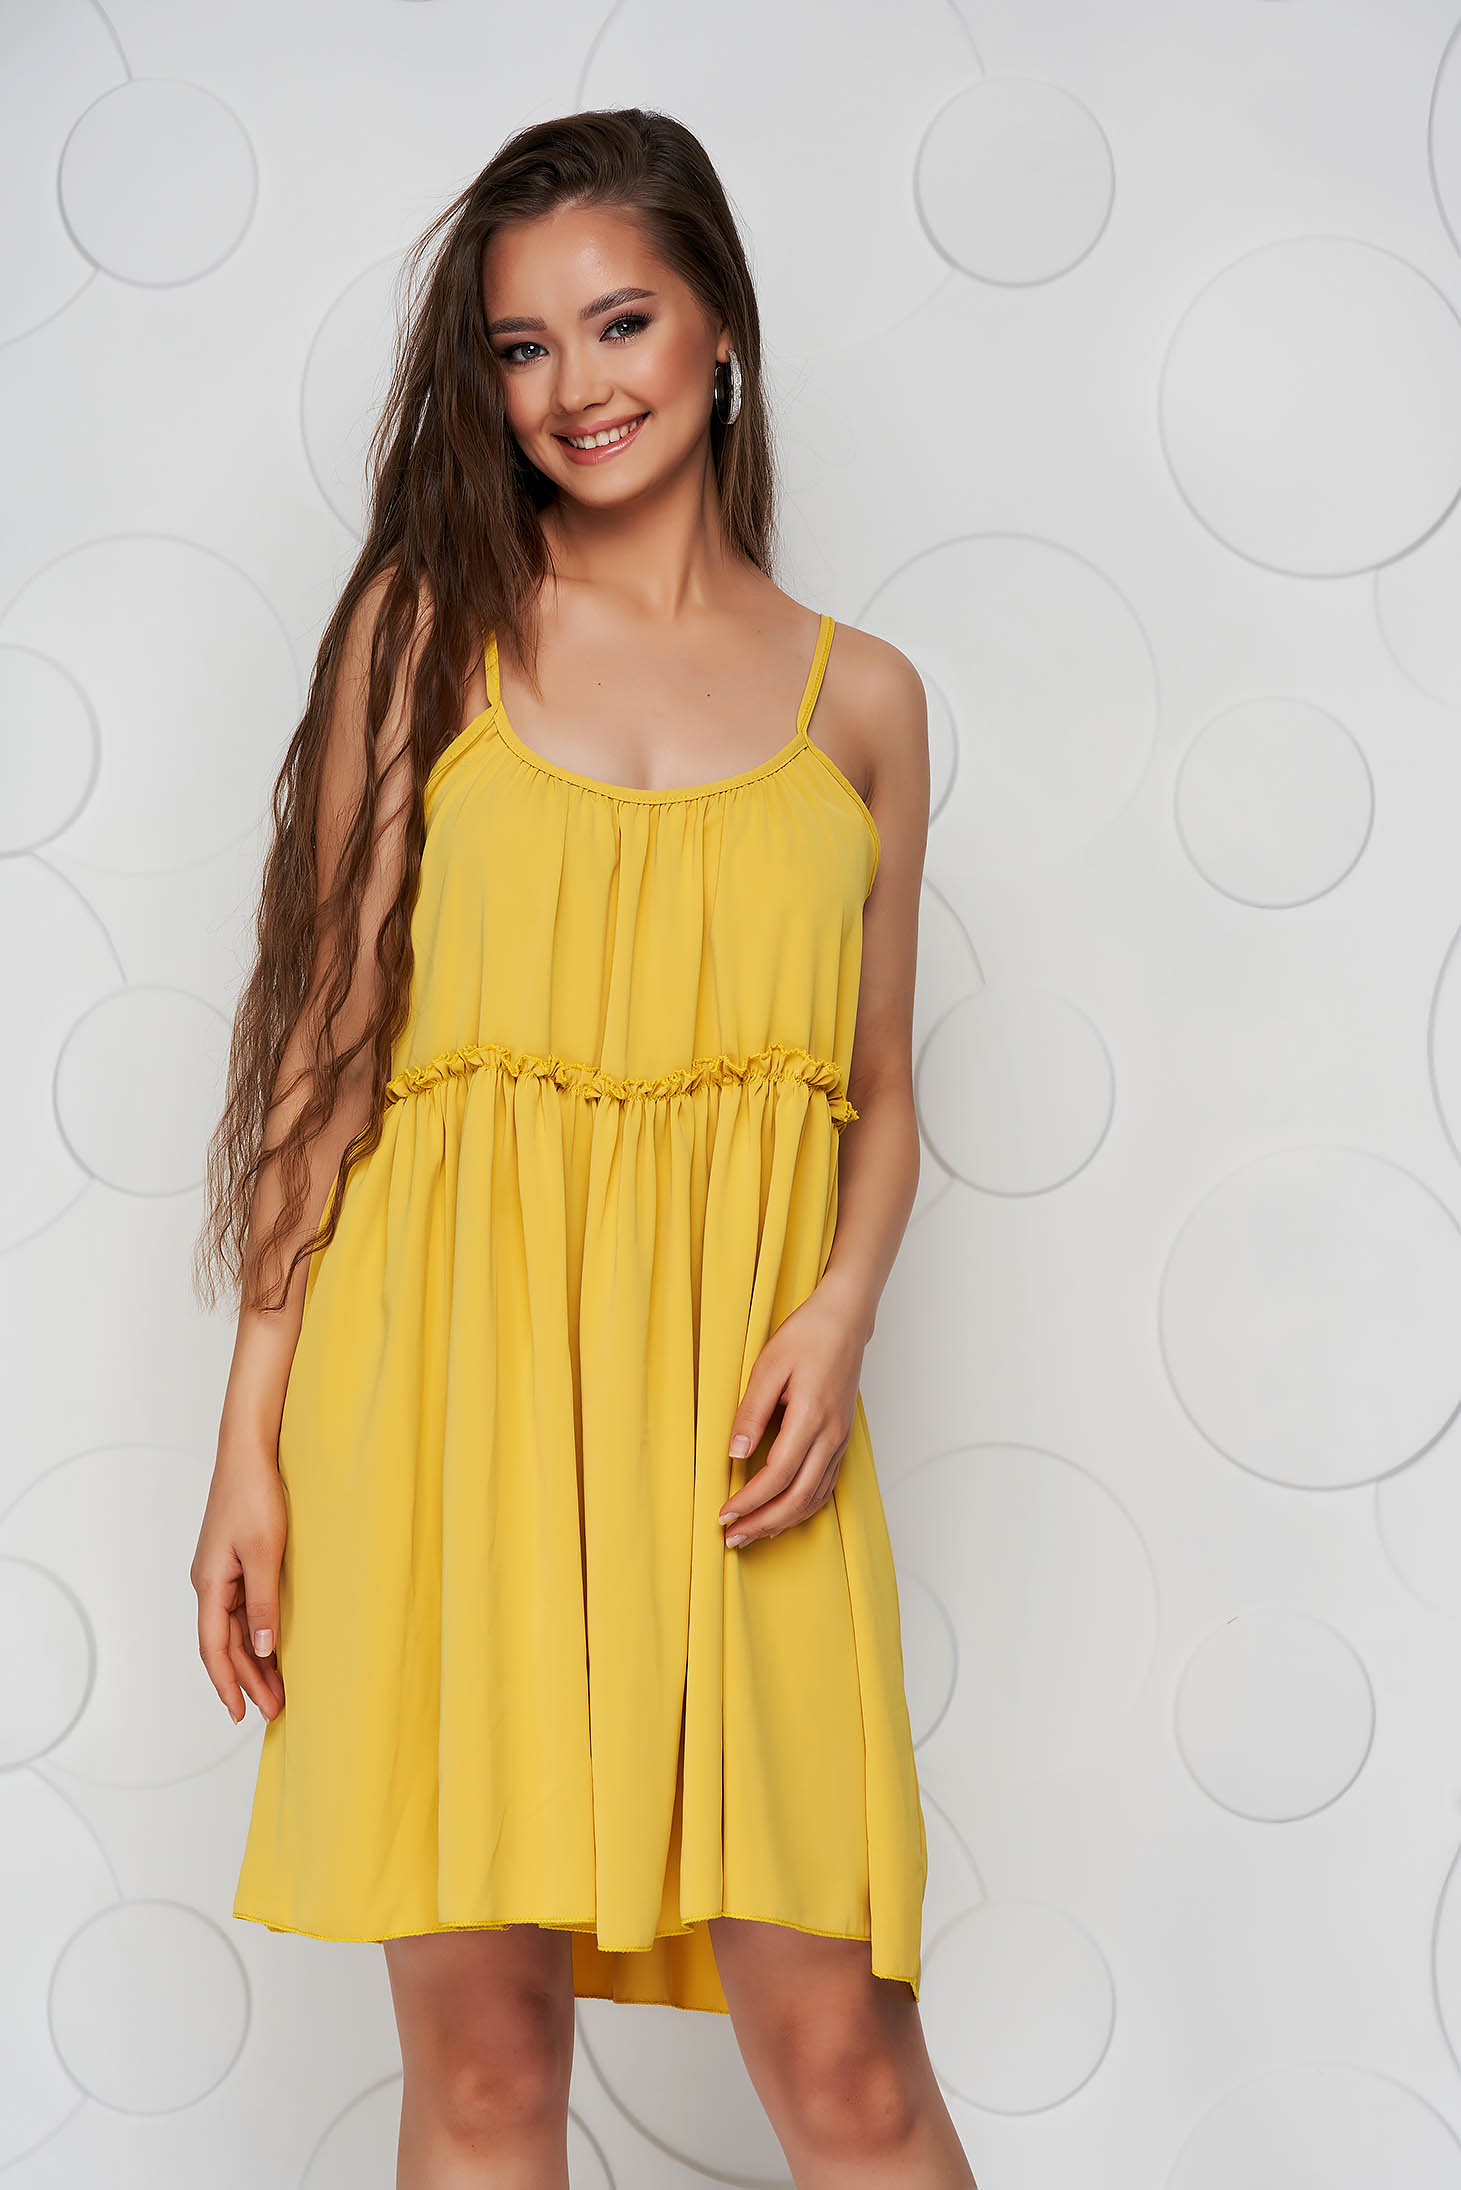 Mustard dress thin fabric loose fit with straps with rounded cleavage airy fabric